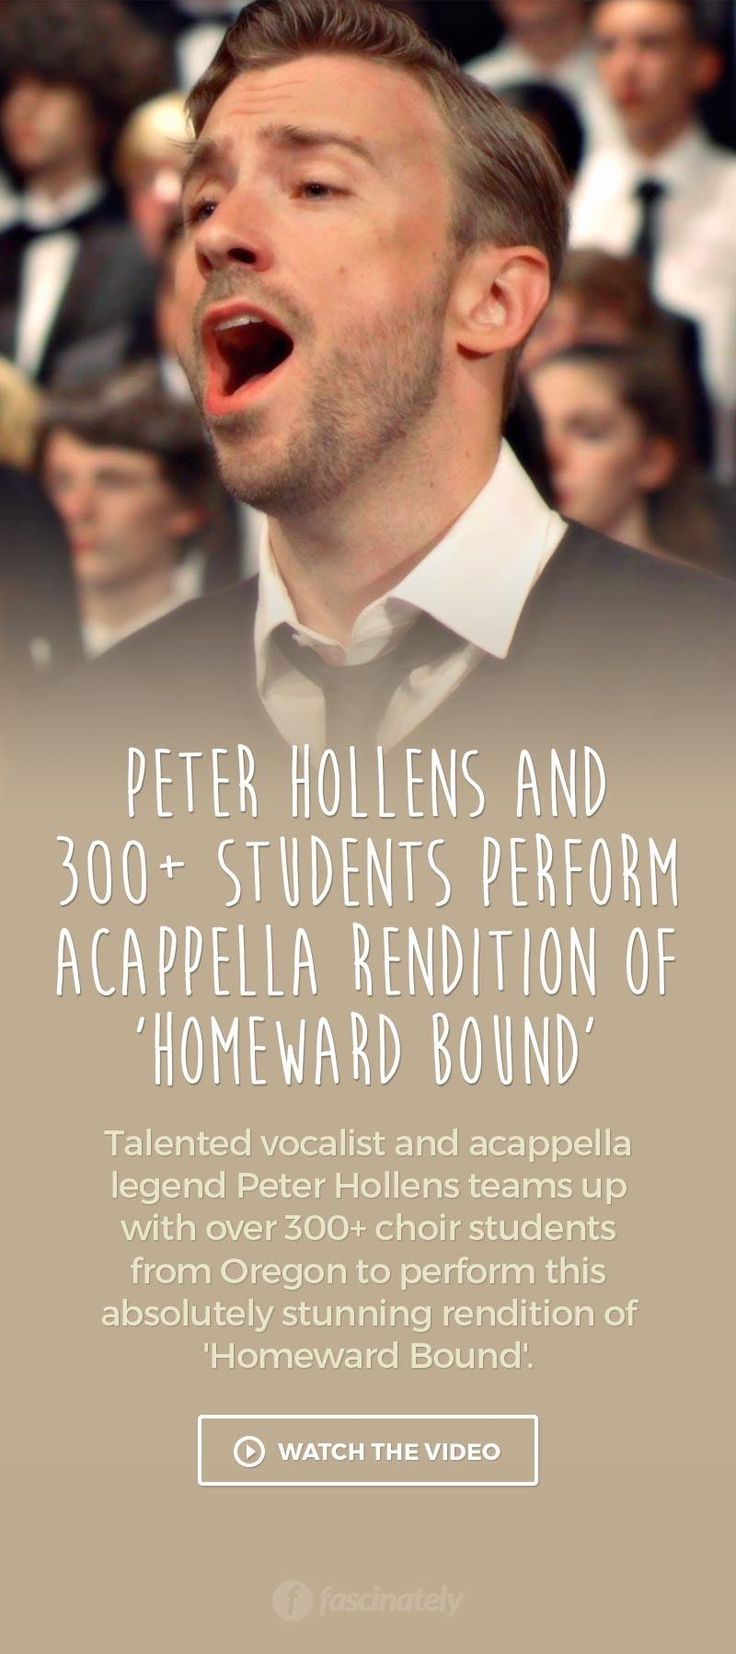 Peter Hollens and 300+ Students Perform Acappella Rendition of 'Homeward Bound'